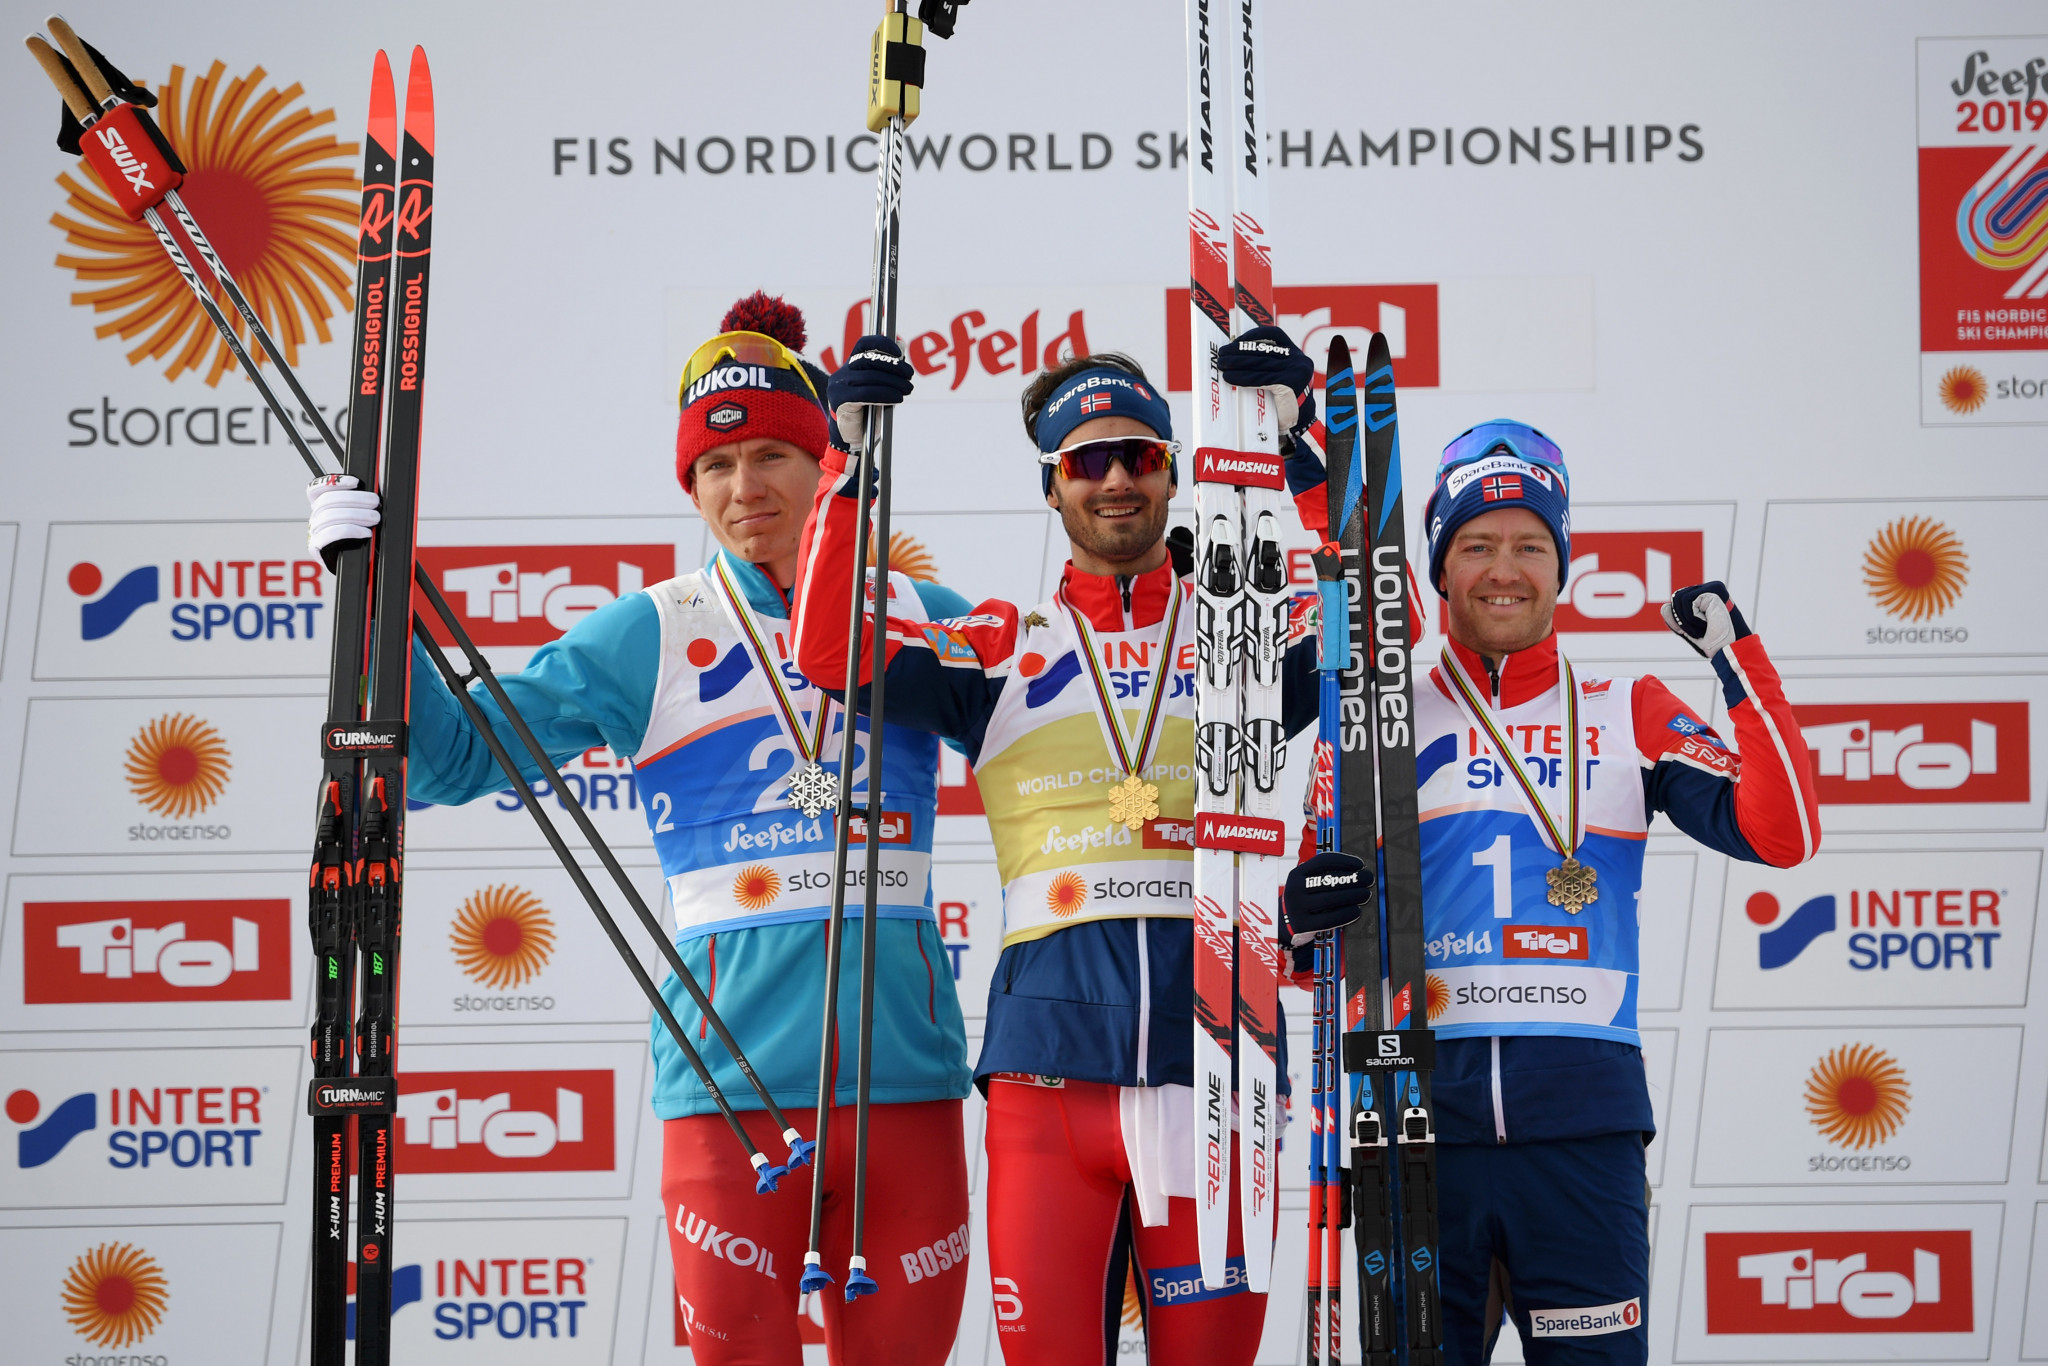 The Norwegian overcame a strong field to secure his first world title ©Getty Images